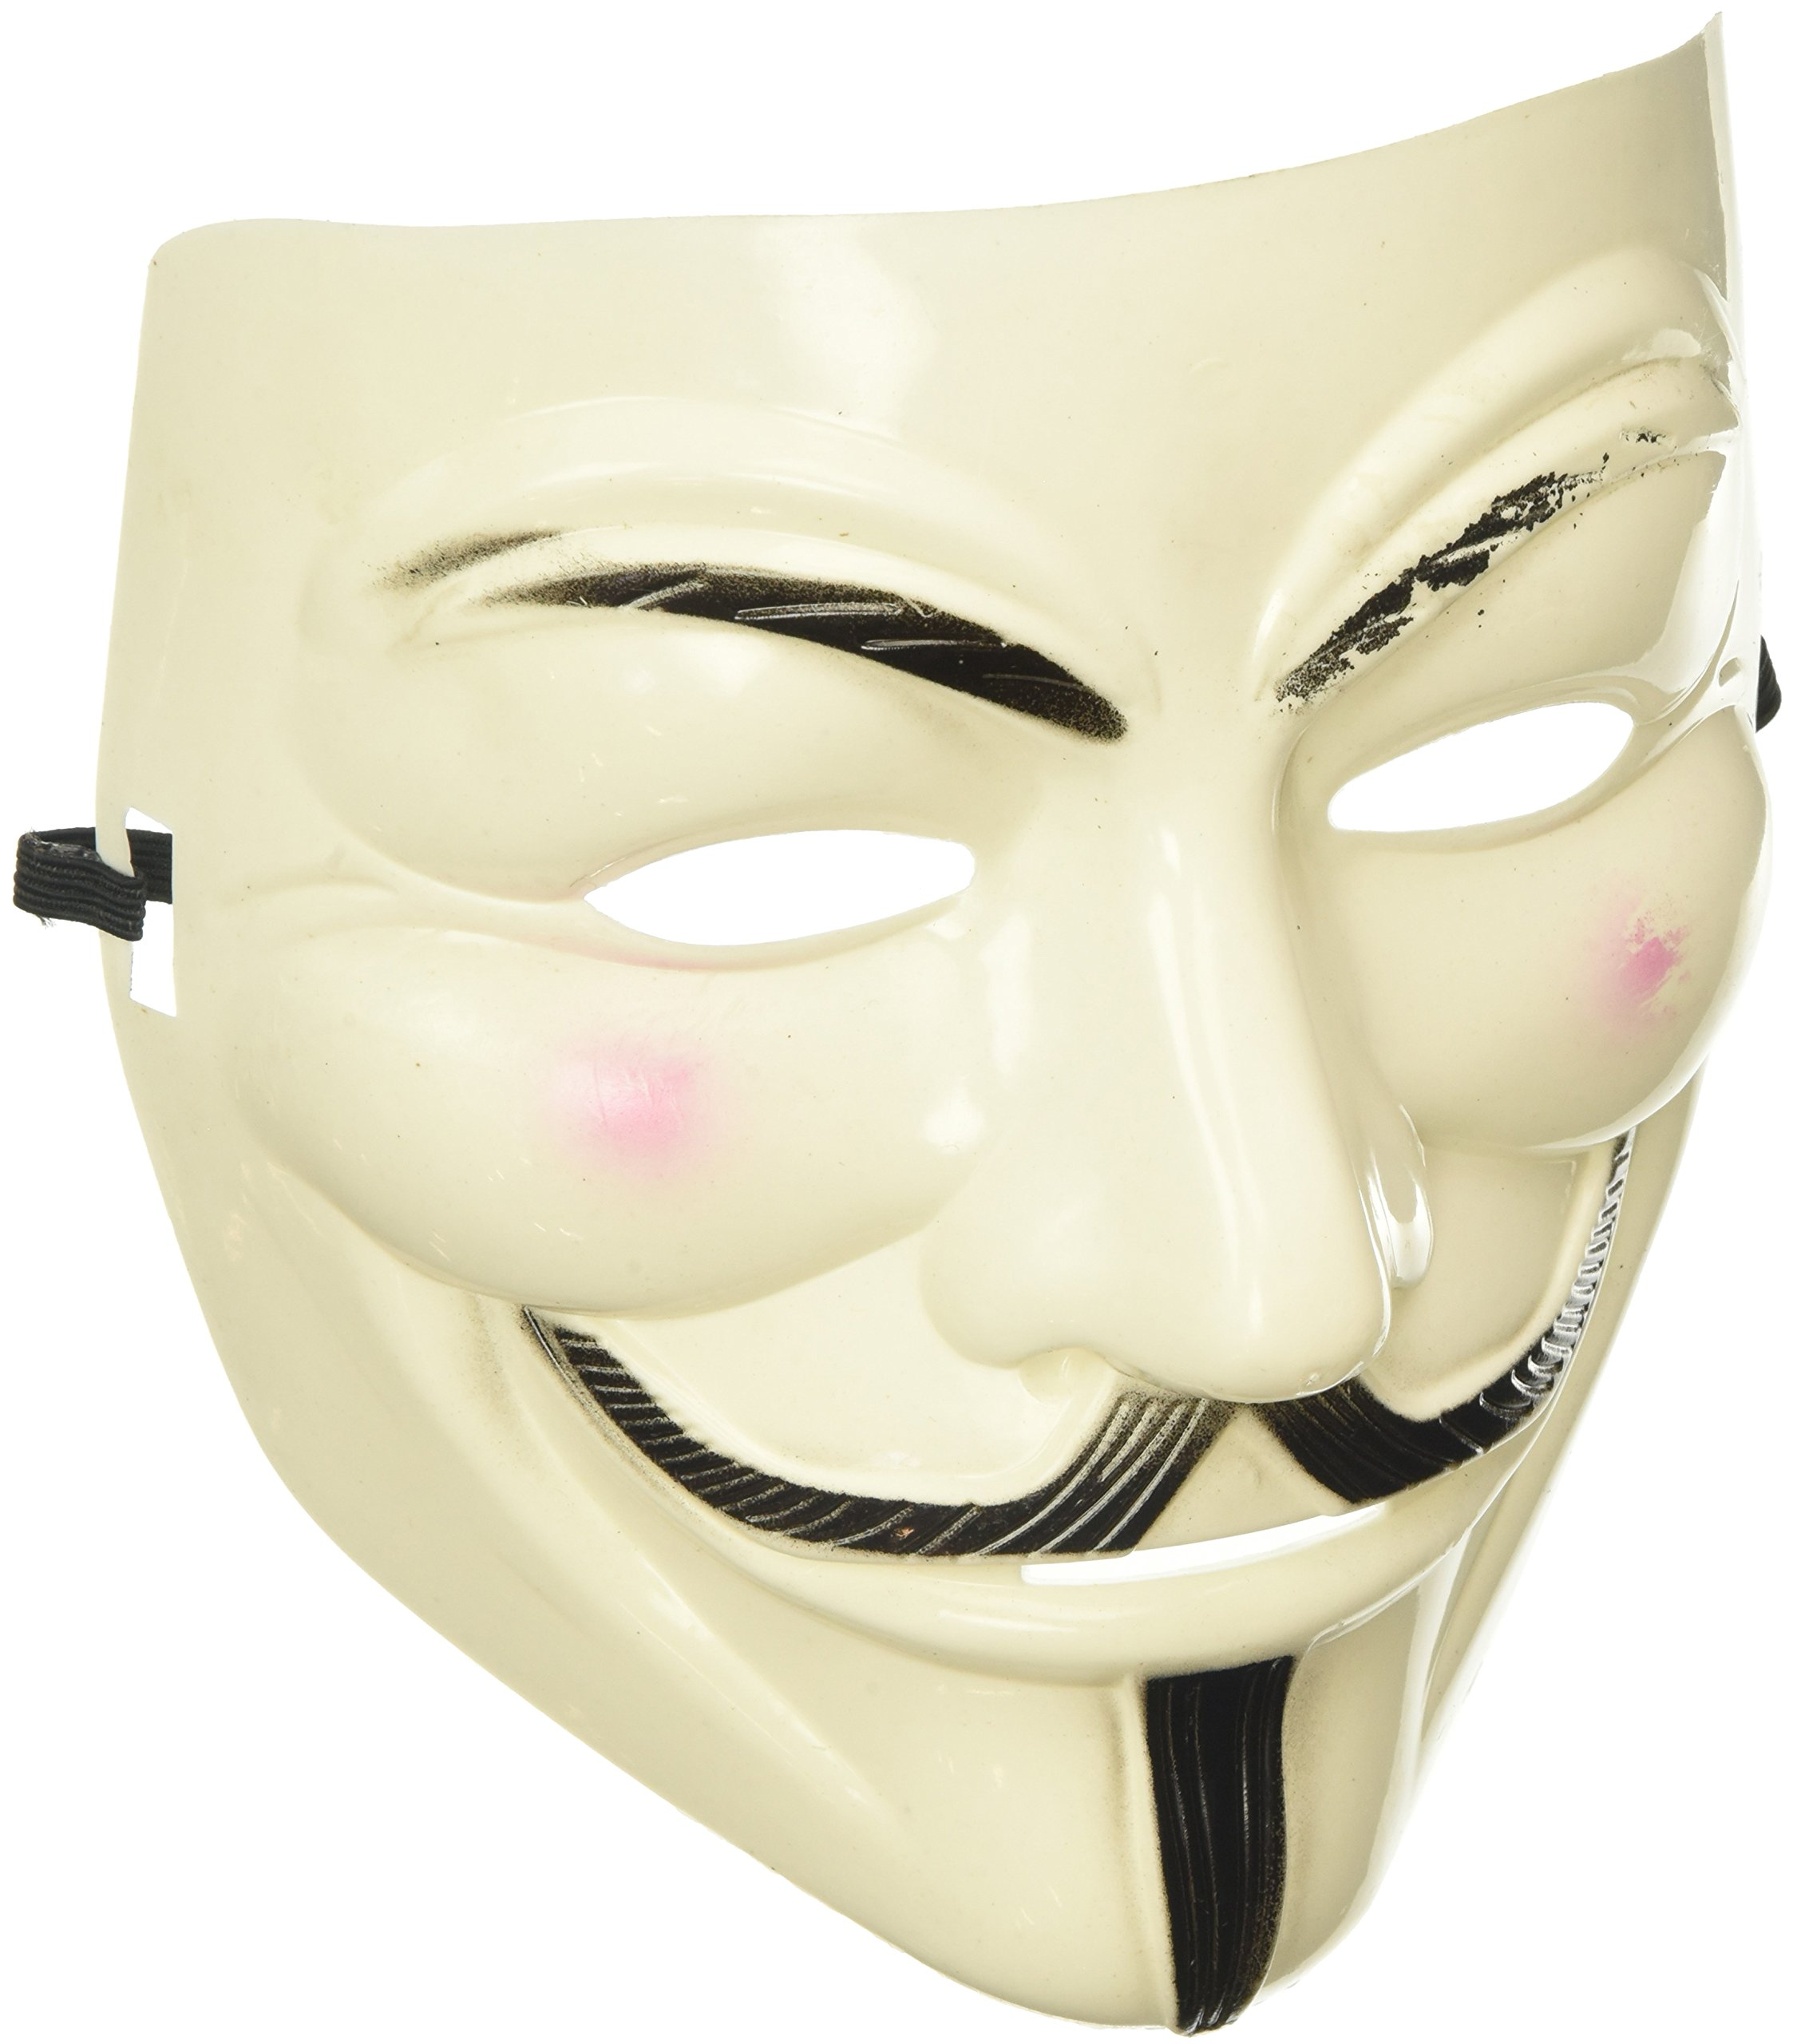 V for Vendetta Mask Guy Fawkes Halloween Masquerade Party Face Costume